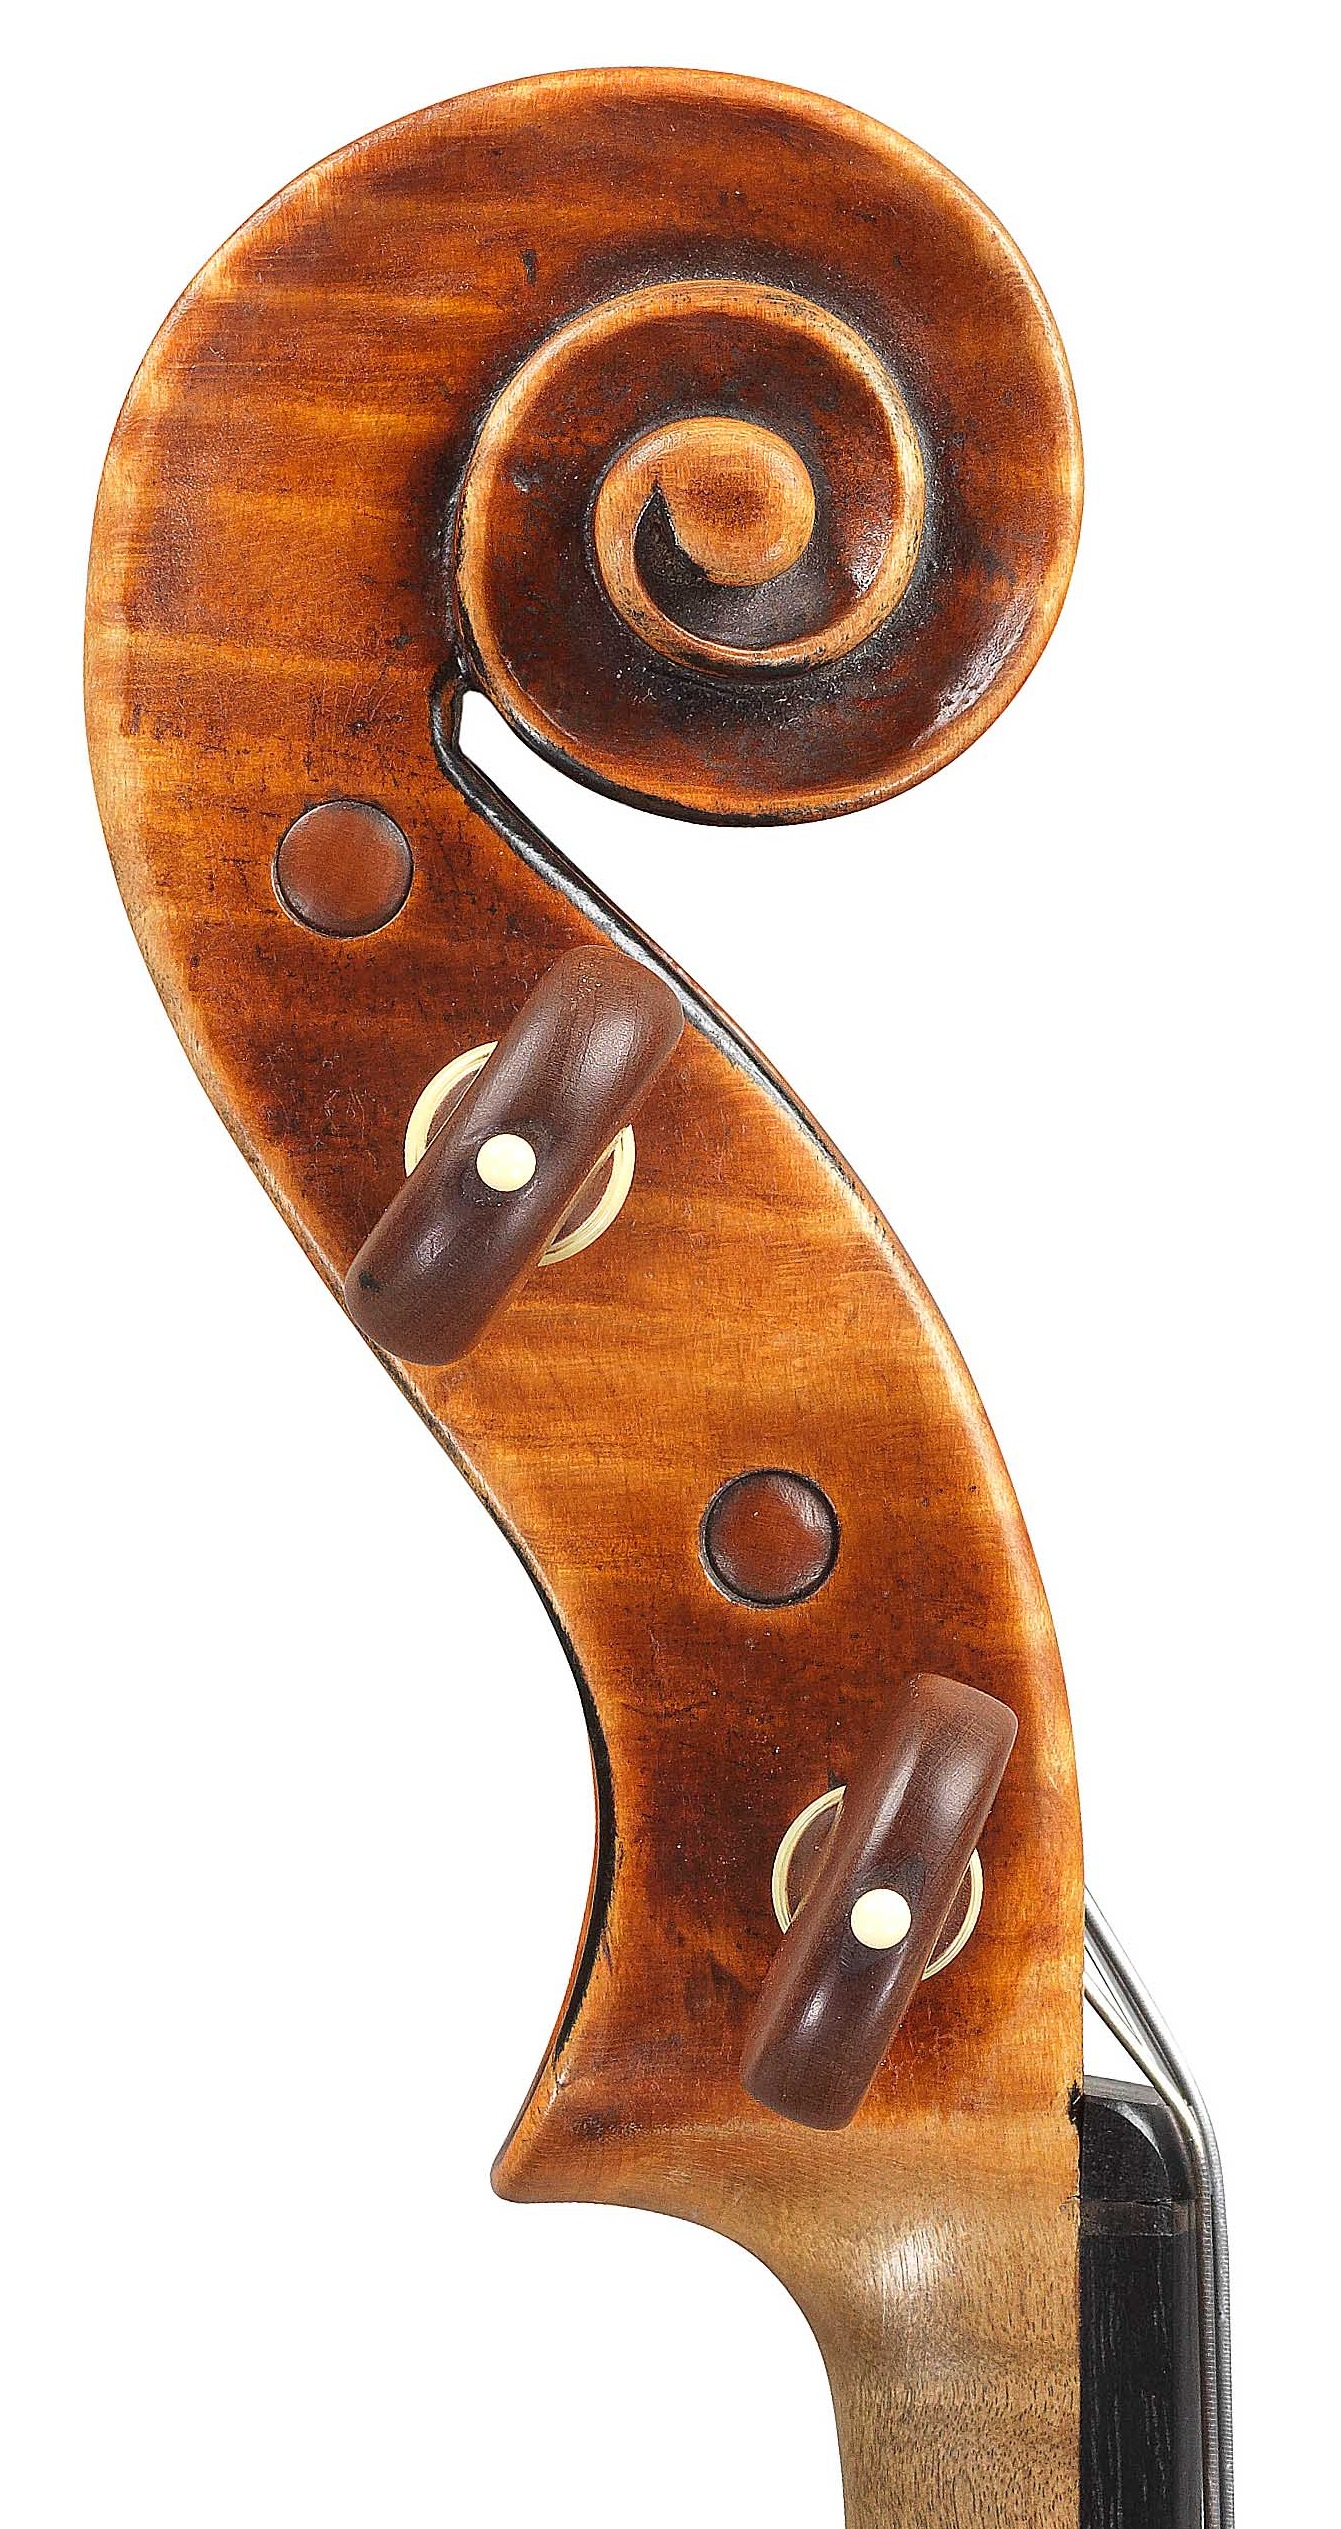 Scroll of violin by JB Vuillaume, ex-Robertson, dated 1870, exhibited by Ingles & Hayday at Sotheby's in 2012